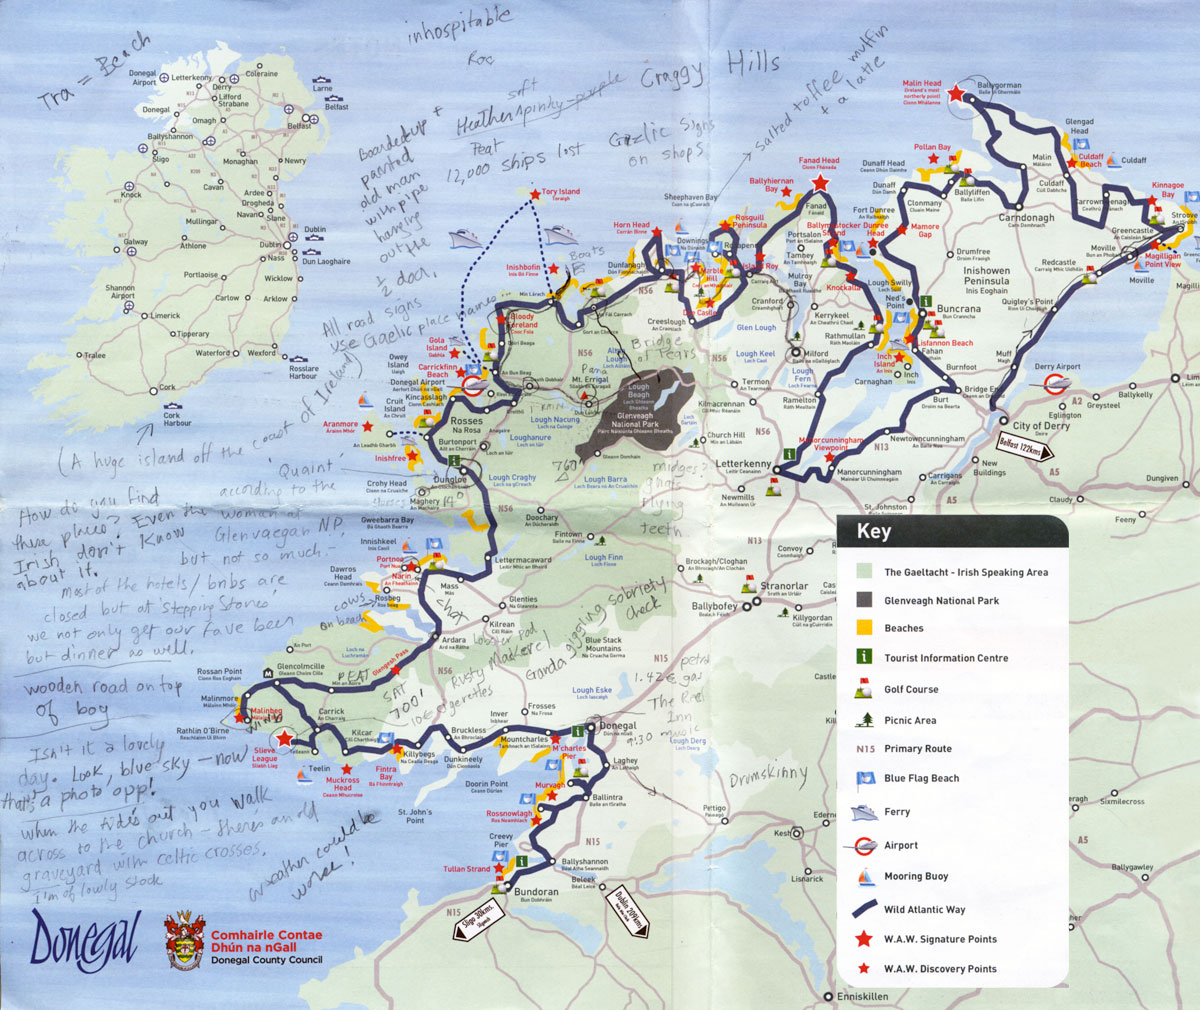 Donegal 'Wild Atlantic Way' route on a placemat